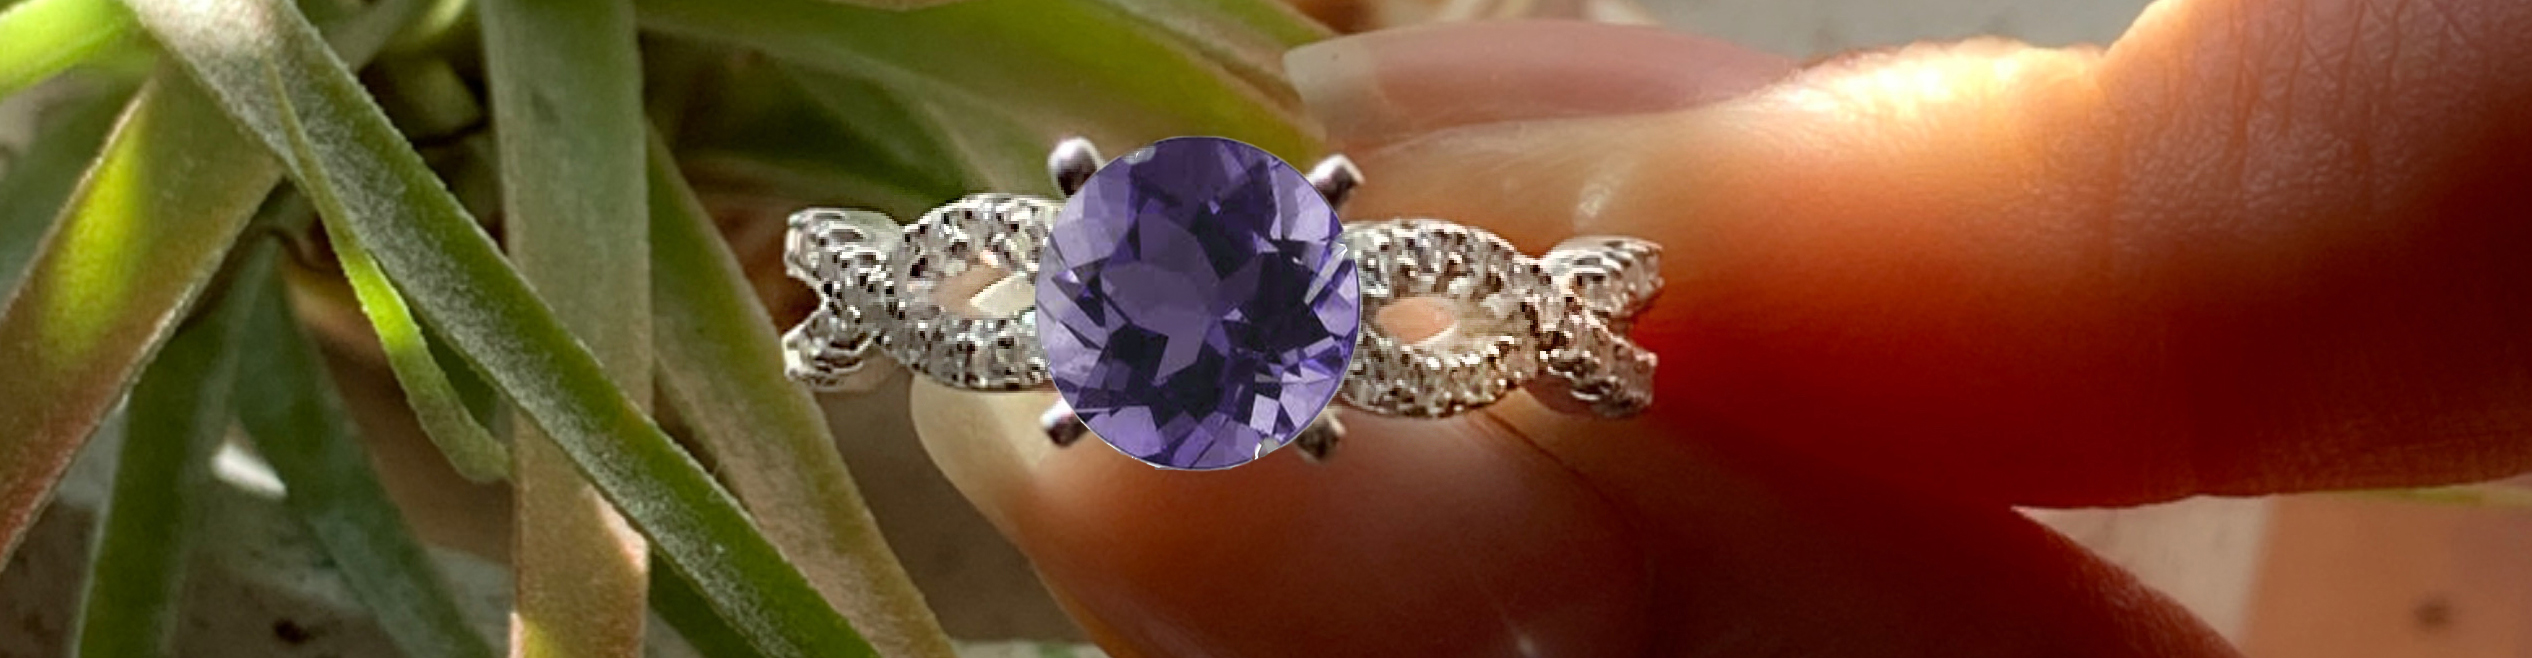 Braided Cathedral Amethyst Ring on Hand